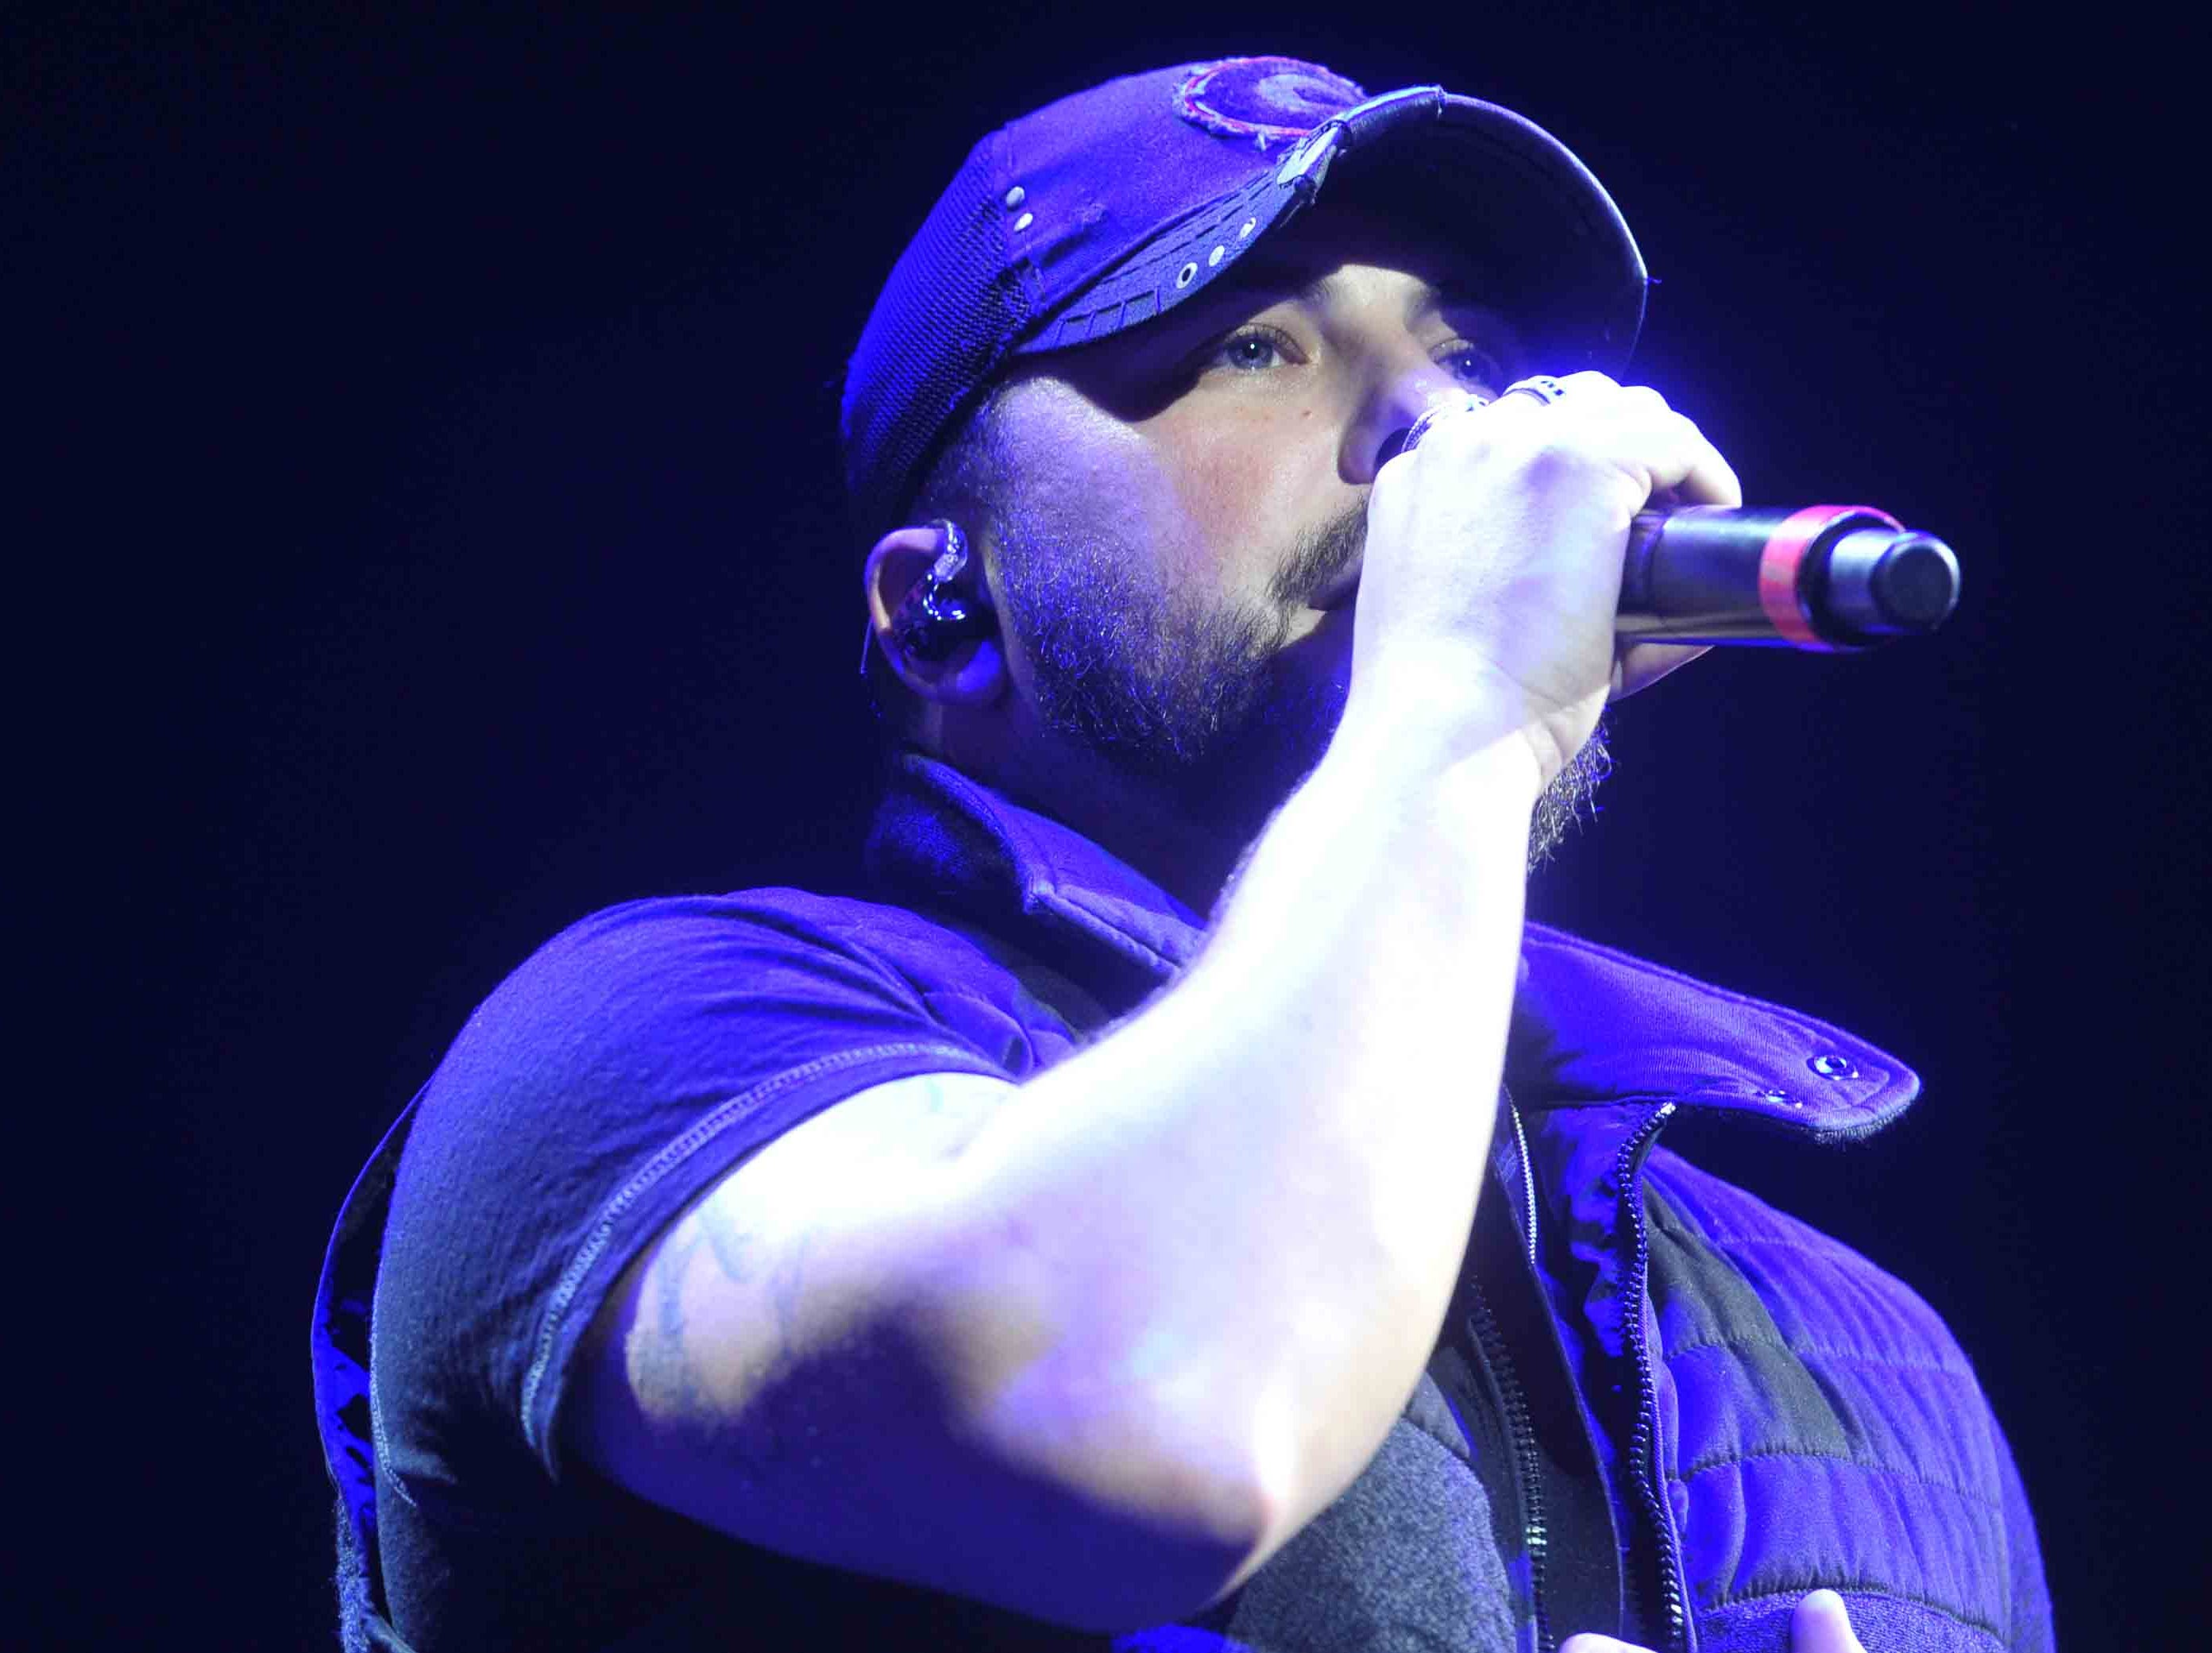 Tyler Farr is scheduled to play the Chevy Riverfront Stage at CMA Fest 2019.